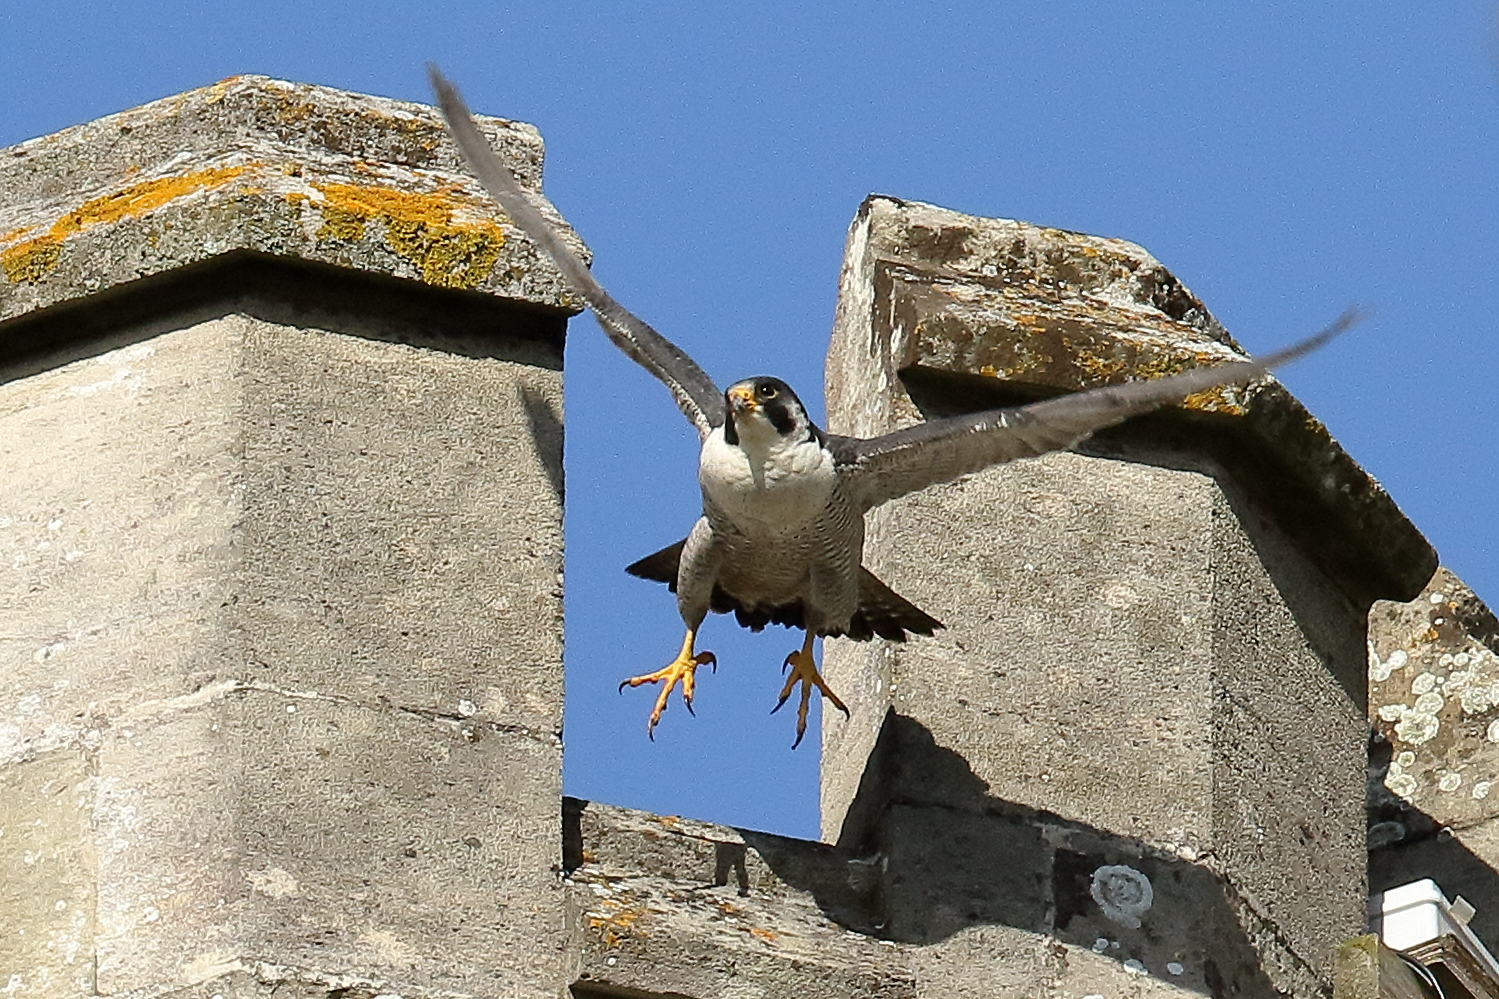 Dad exiting the nest turret